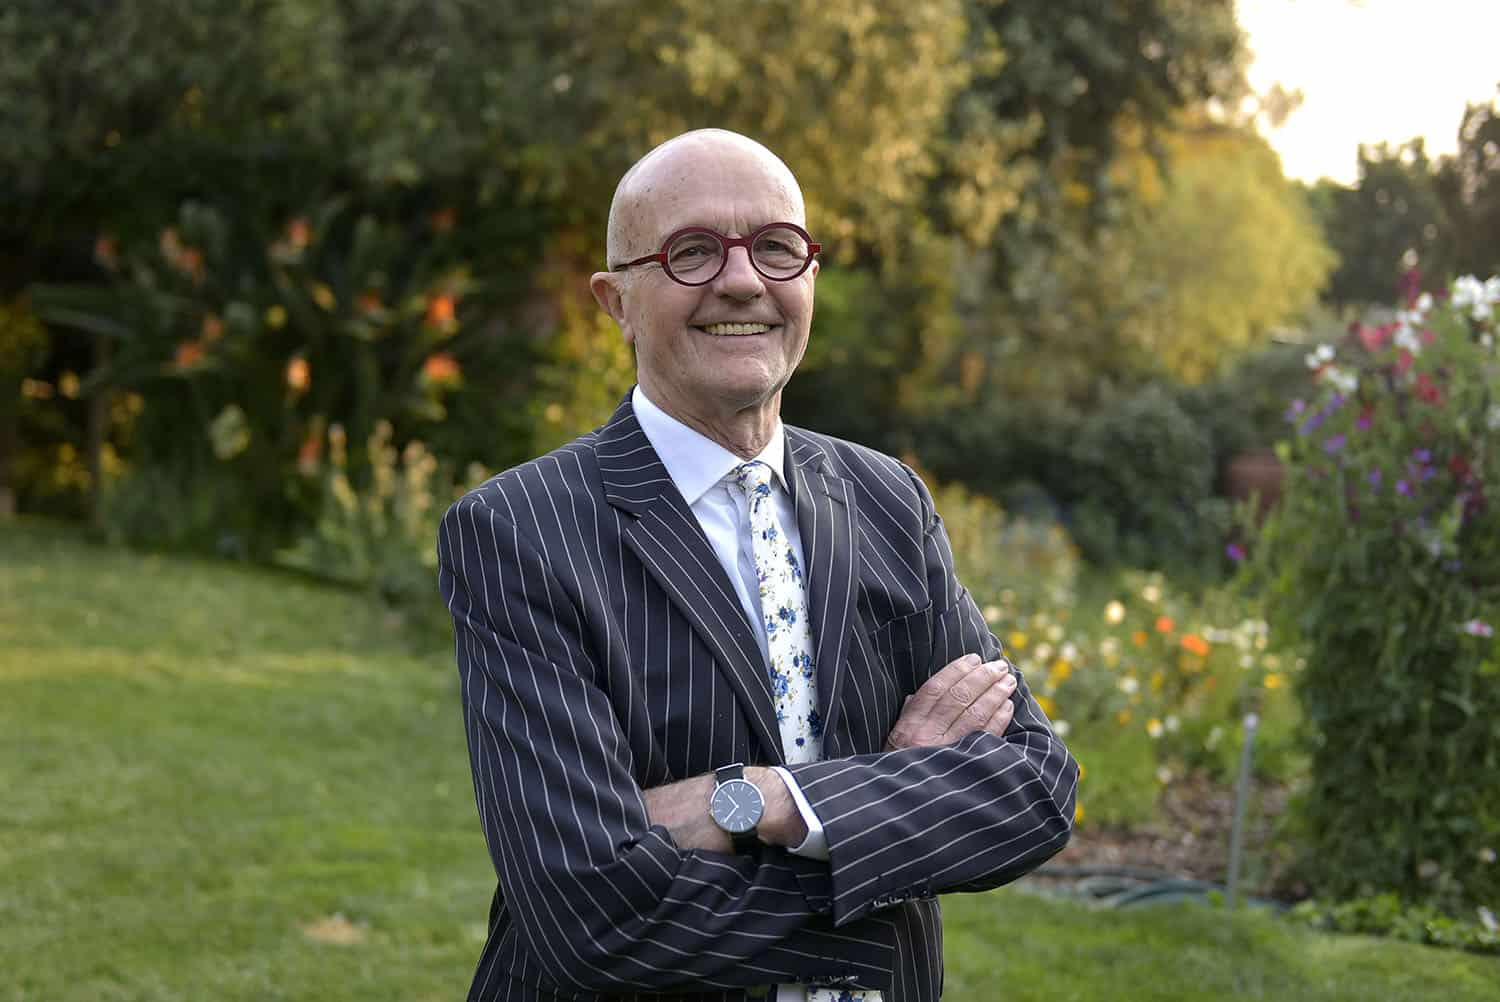 Advocate Wim Trengove speaks to The Citizen at his home in Saxonwold, 30 September 2021 . Picture: Neil McCartney